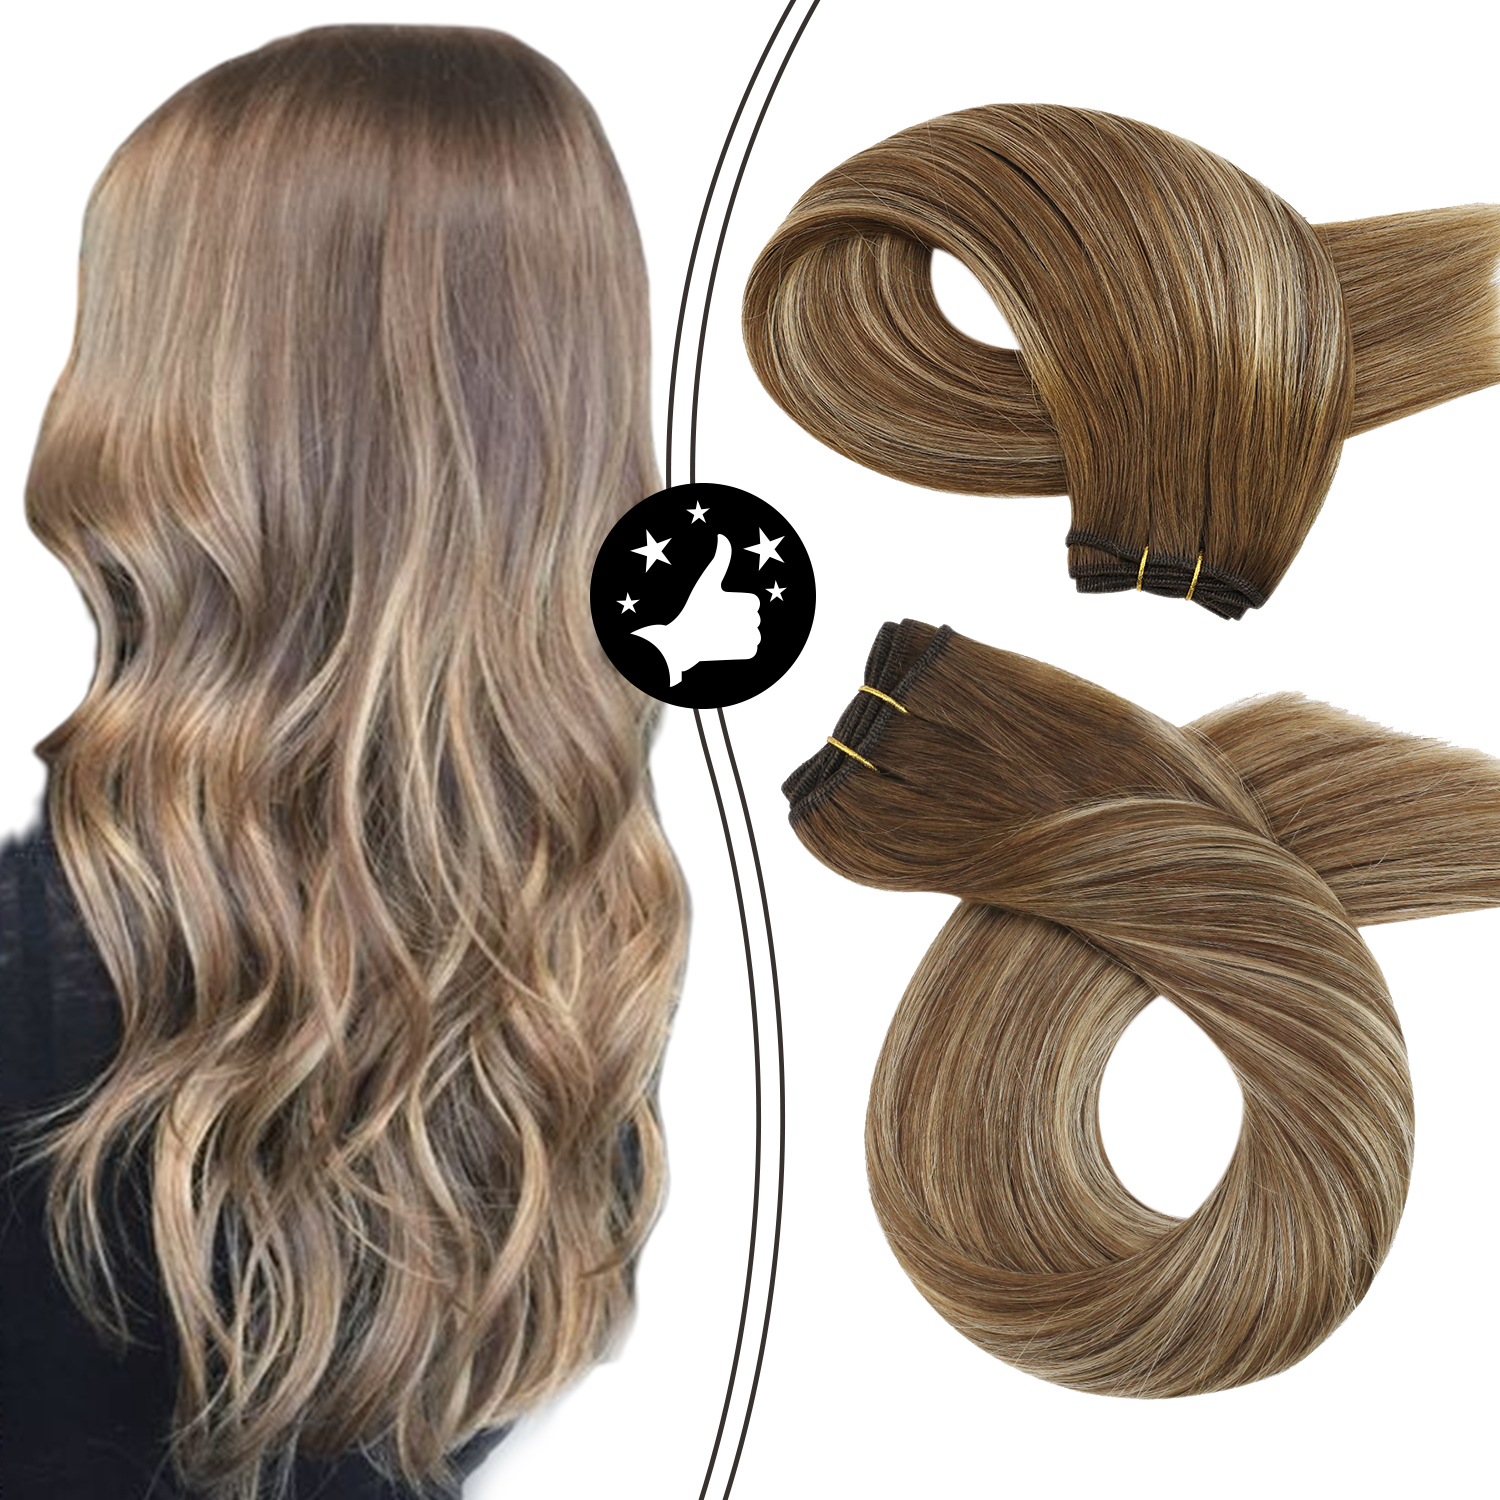 Human Hair Extensions Sew in Bundles Natural and Soft Mahcine Remy Hair Balayage Brown and Blonde Weft Hair Invisible Weave